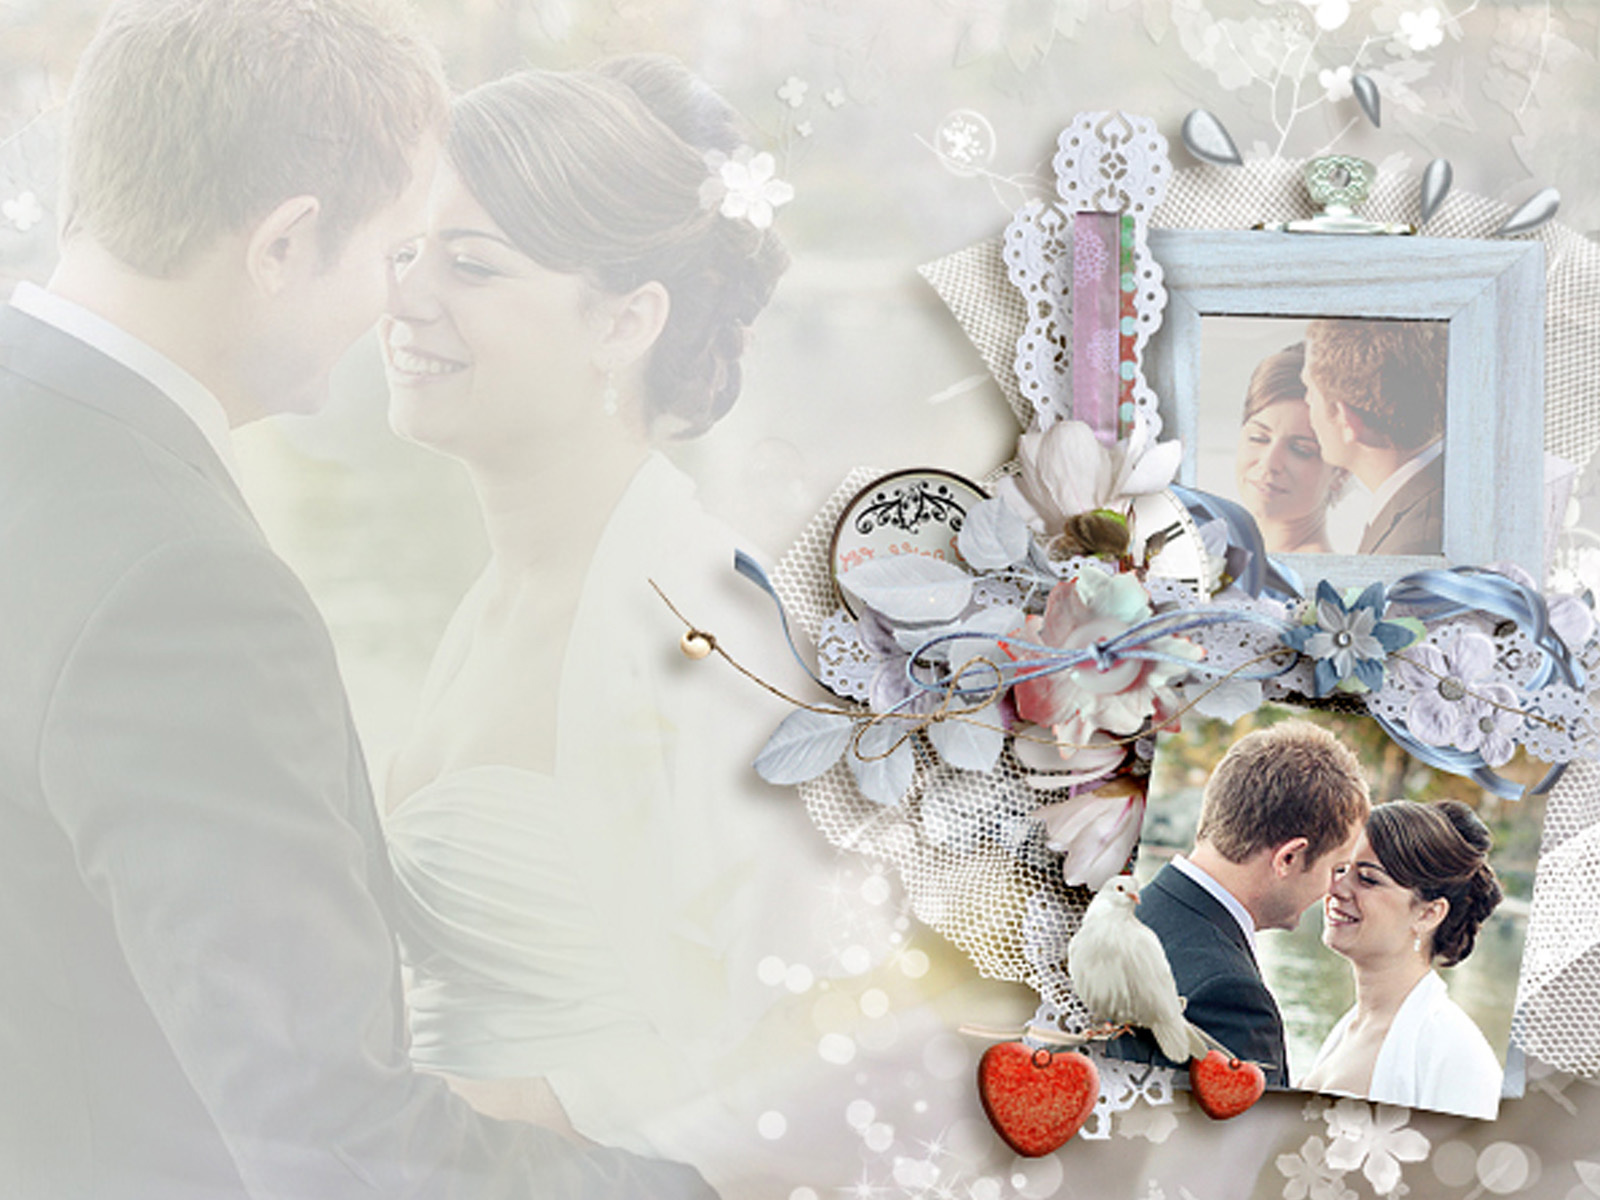 Special Wedding Day PPT Backgrounds for your PowerPoint Templates 1600x1200